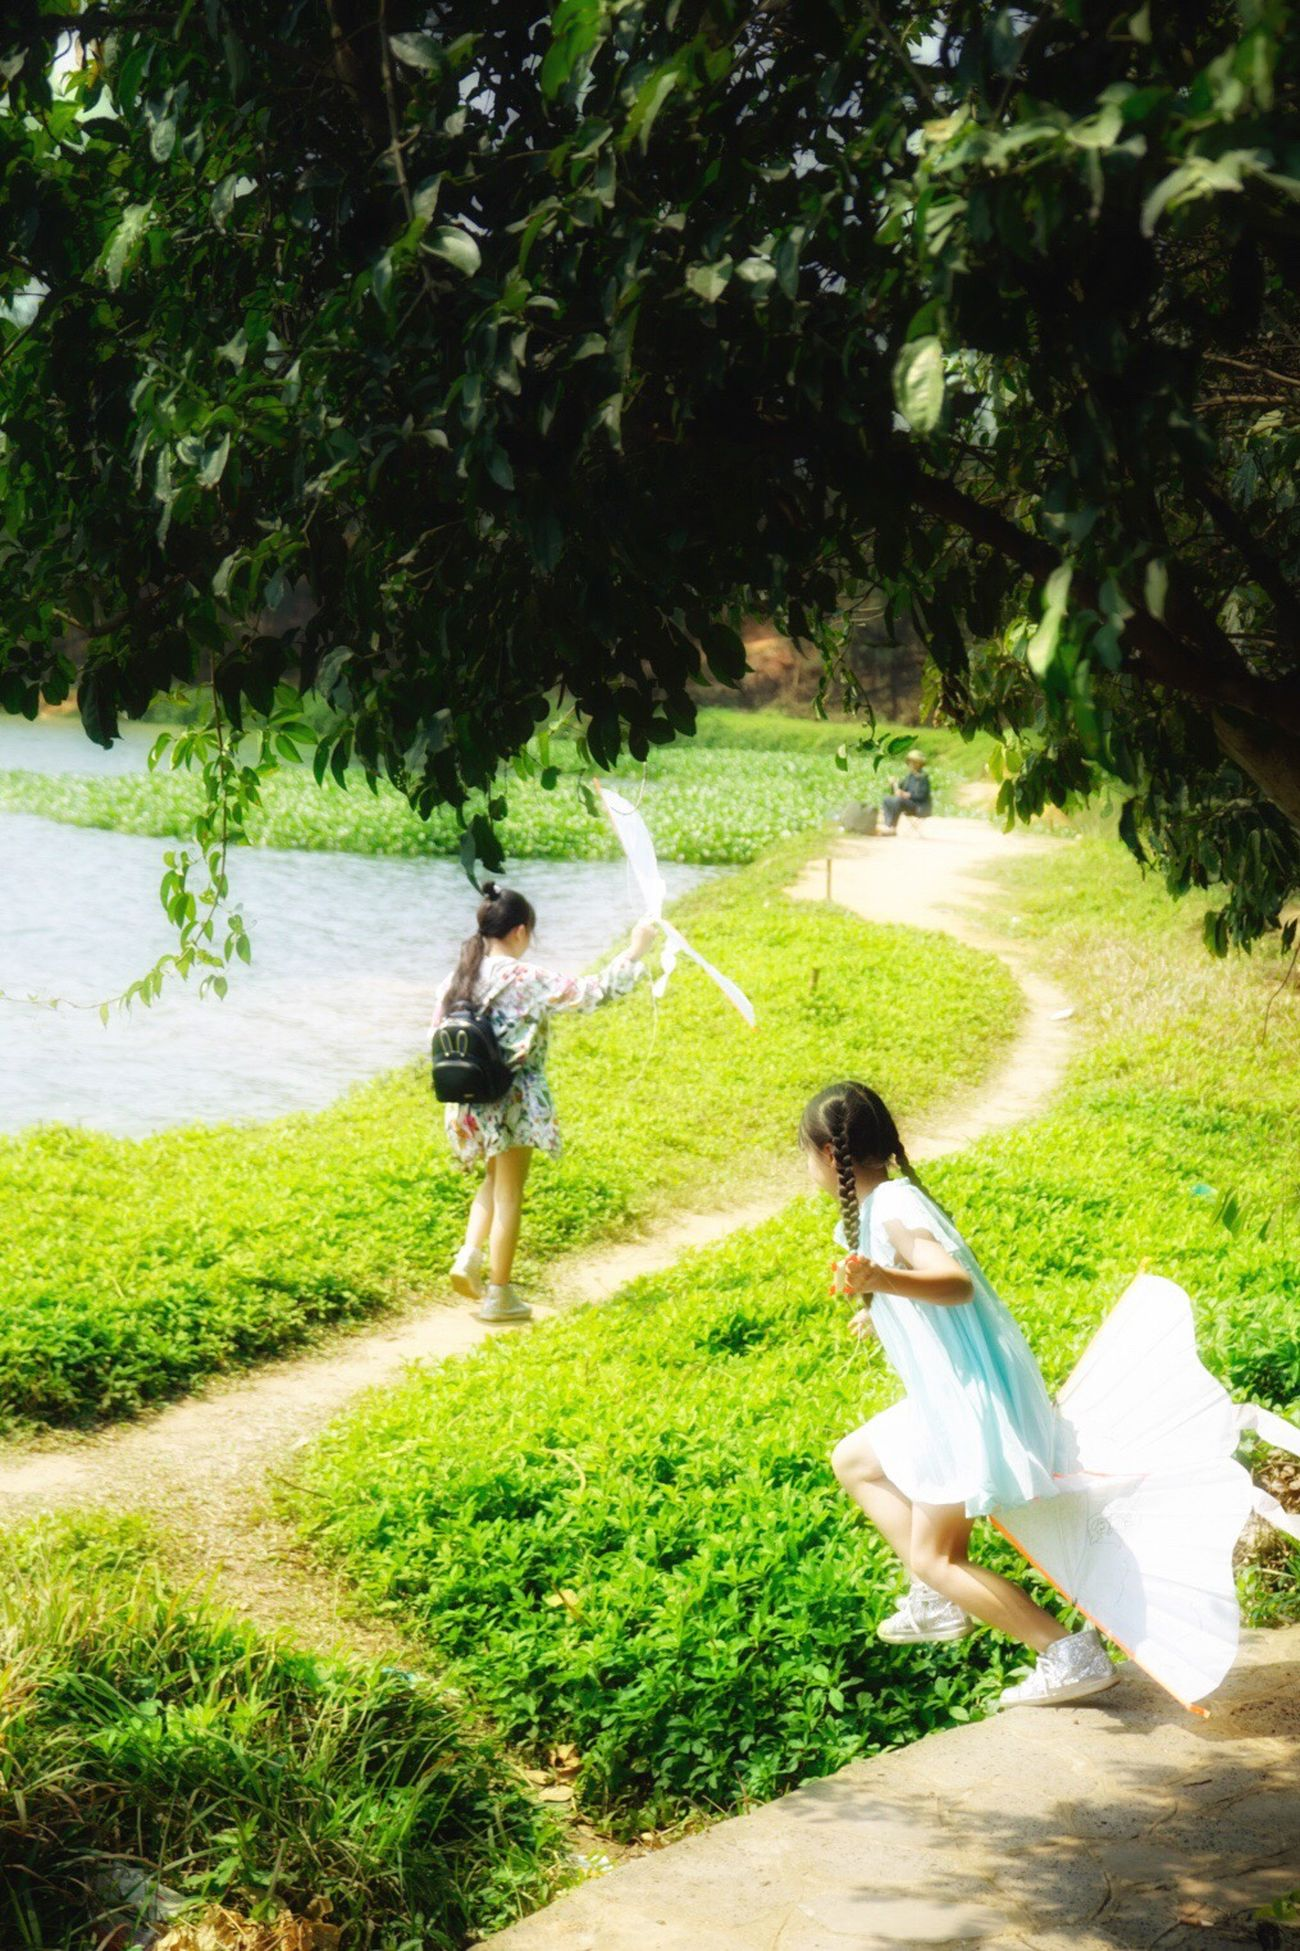 My little fairies❤️ Grass Tree Childhood Day Green Color Outdoors Full Length Togetherness People Adult Happiness Flying A Kite Tree Spring Lovely View Green